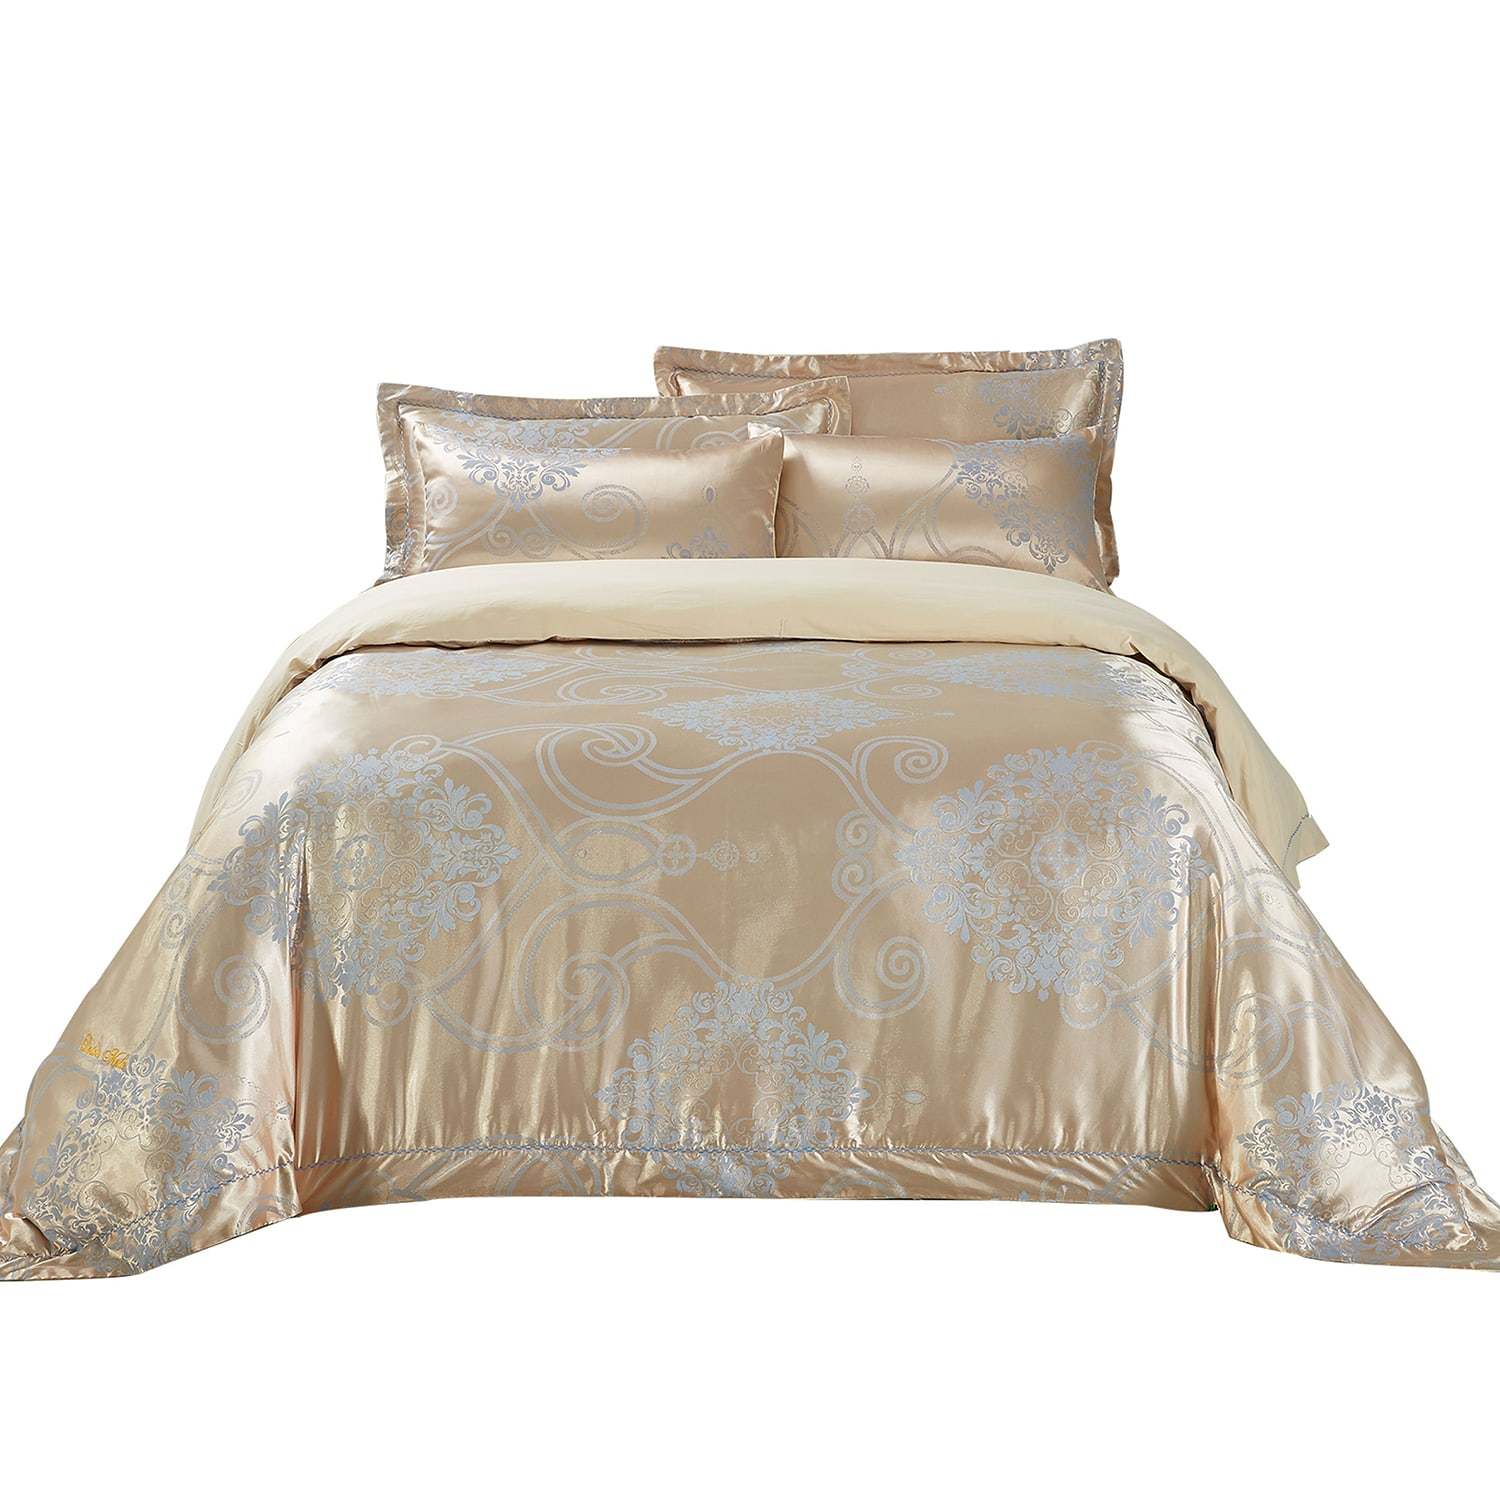 Swish King Size Duvet Covers Quick View Verona By Dolce Mela Bedding Luxury King Size Duvet Cover Set Cm King Size Duvet Covers Dimensions houzz 01 King Size Duvet Covers